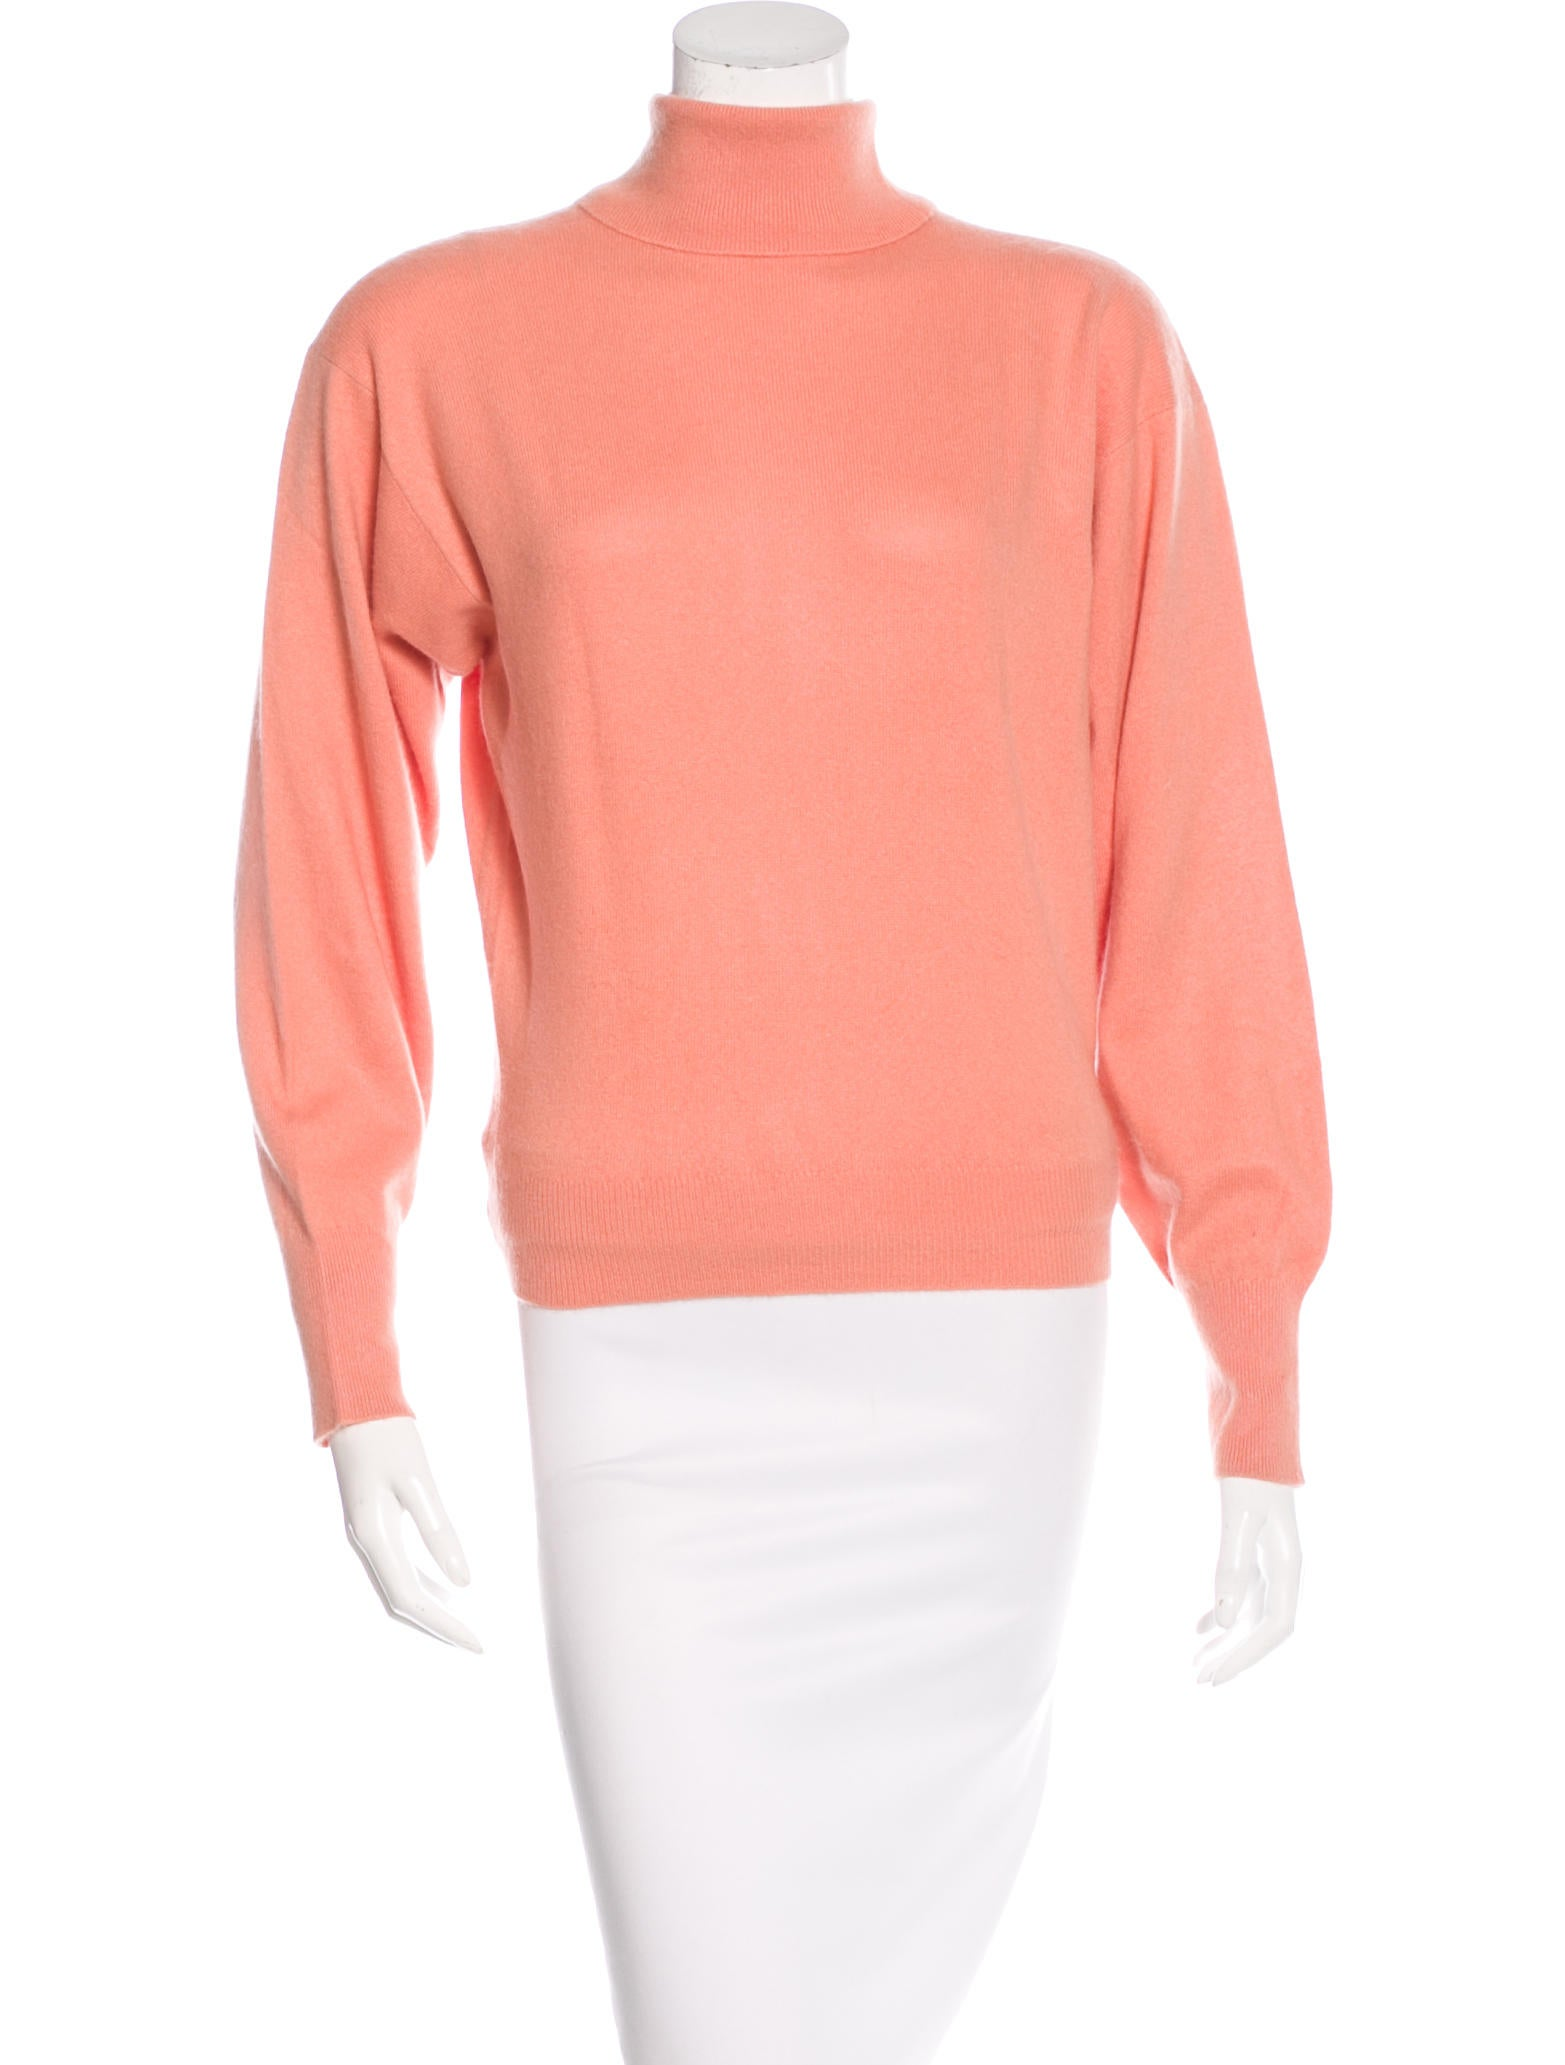 cashmere dating site Taking a swipe at the tinder dating app october 9,  michaelkorscom uniqlo cashmere crewneck  use of and/or registration on any portion of this site.